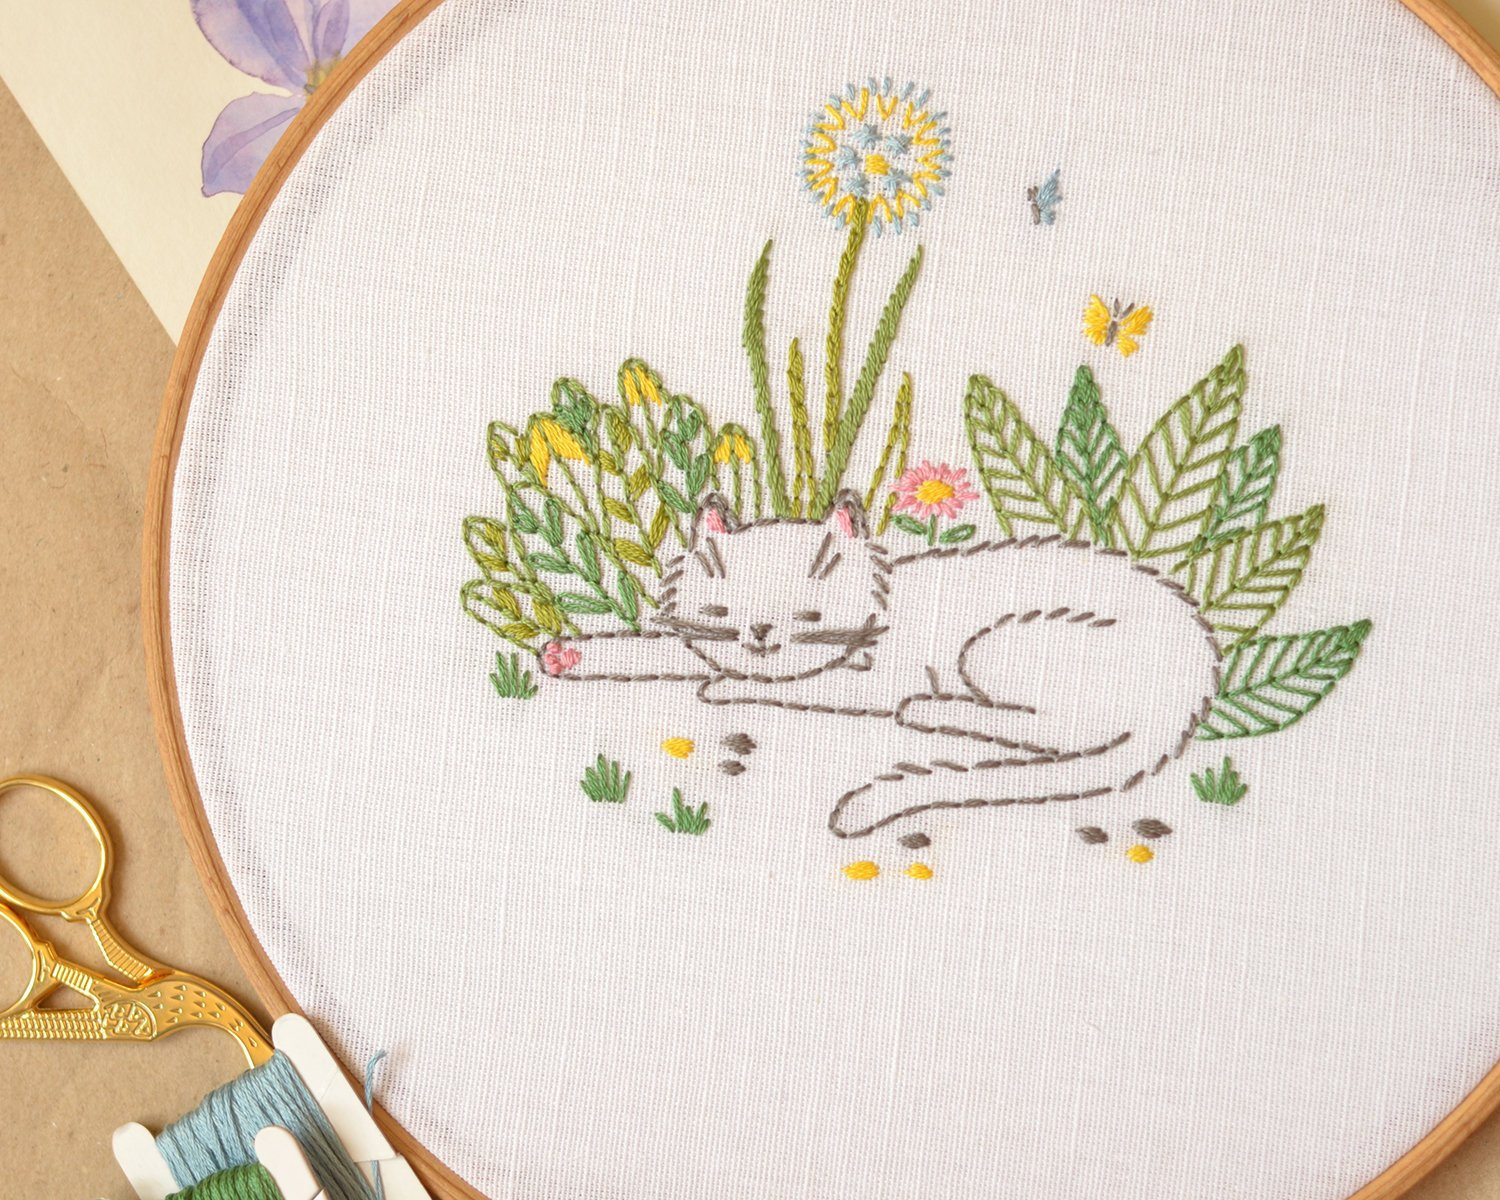 Cat Embroidery Patterns Cat And Dandelion Hand Embroidery Patterns Pdf Summer Garden Floral Embroidery Cute Gift Naiveneedle